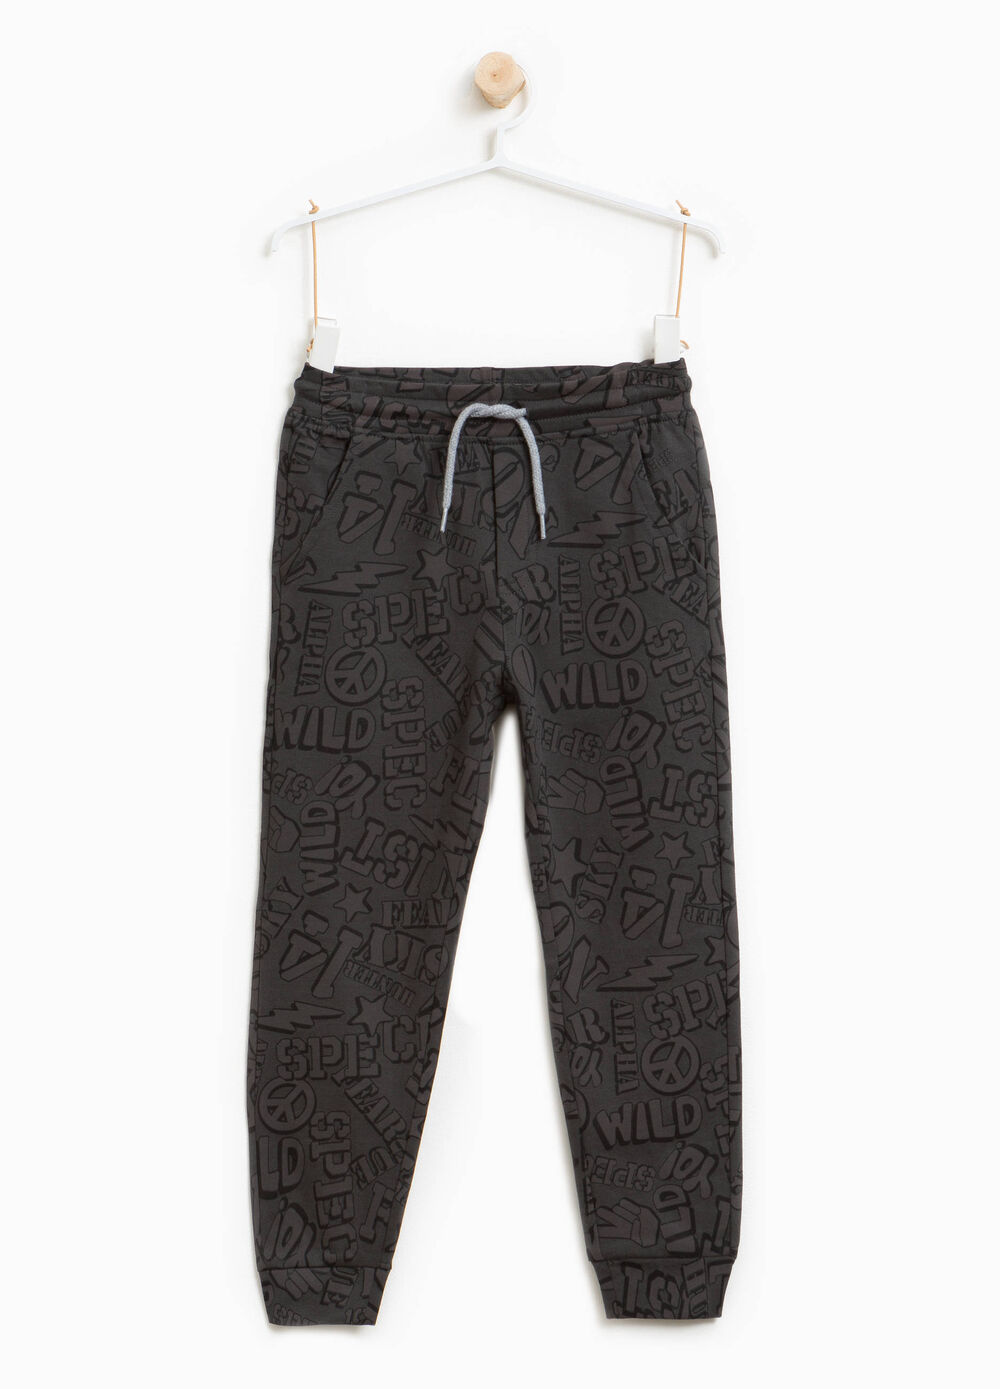 Cotton joggers with lettering pattern